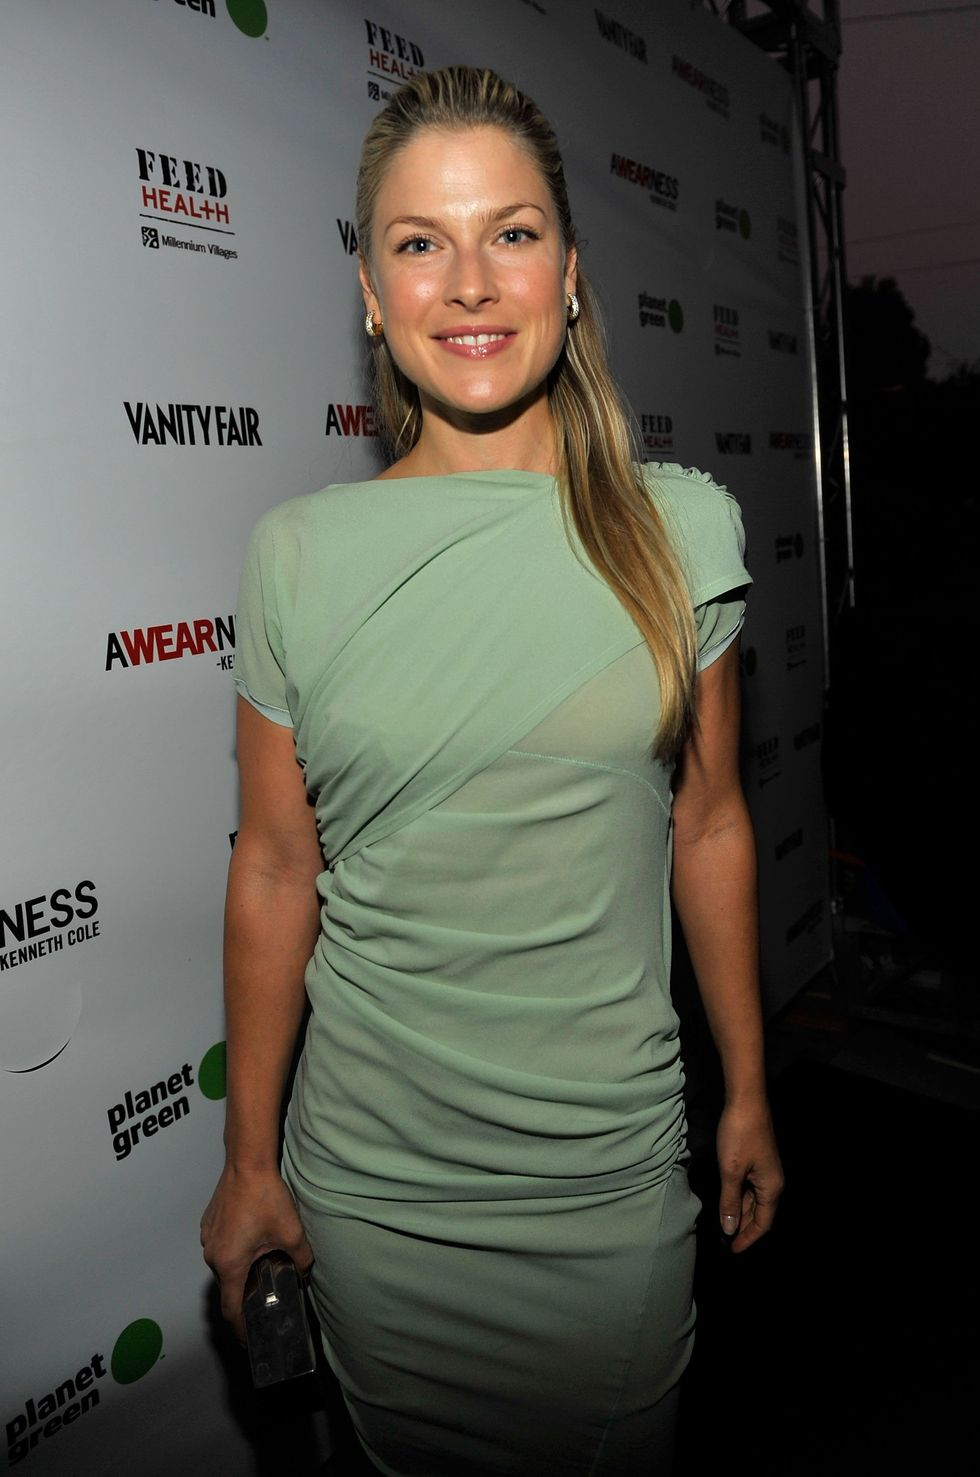 ali-larter-kenneth-cole-awearness-feed-projects-event-in-santa-monic-01